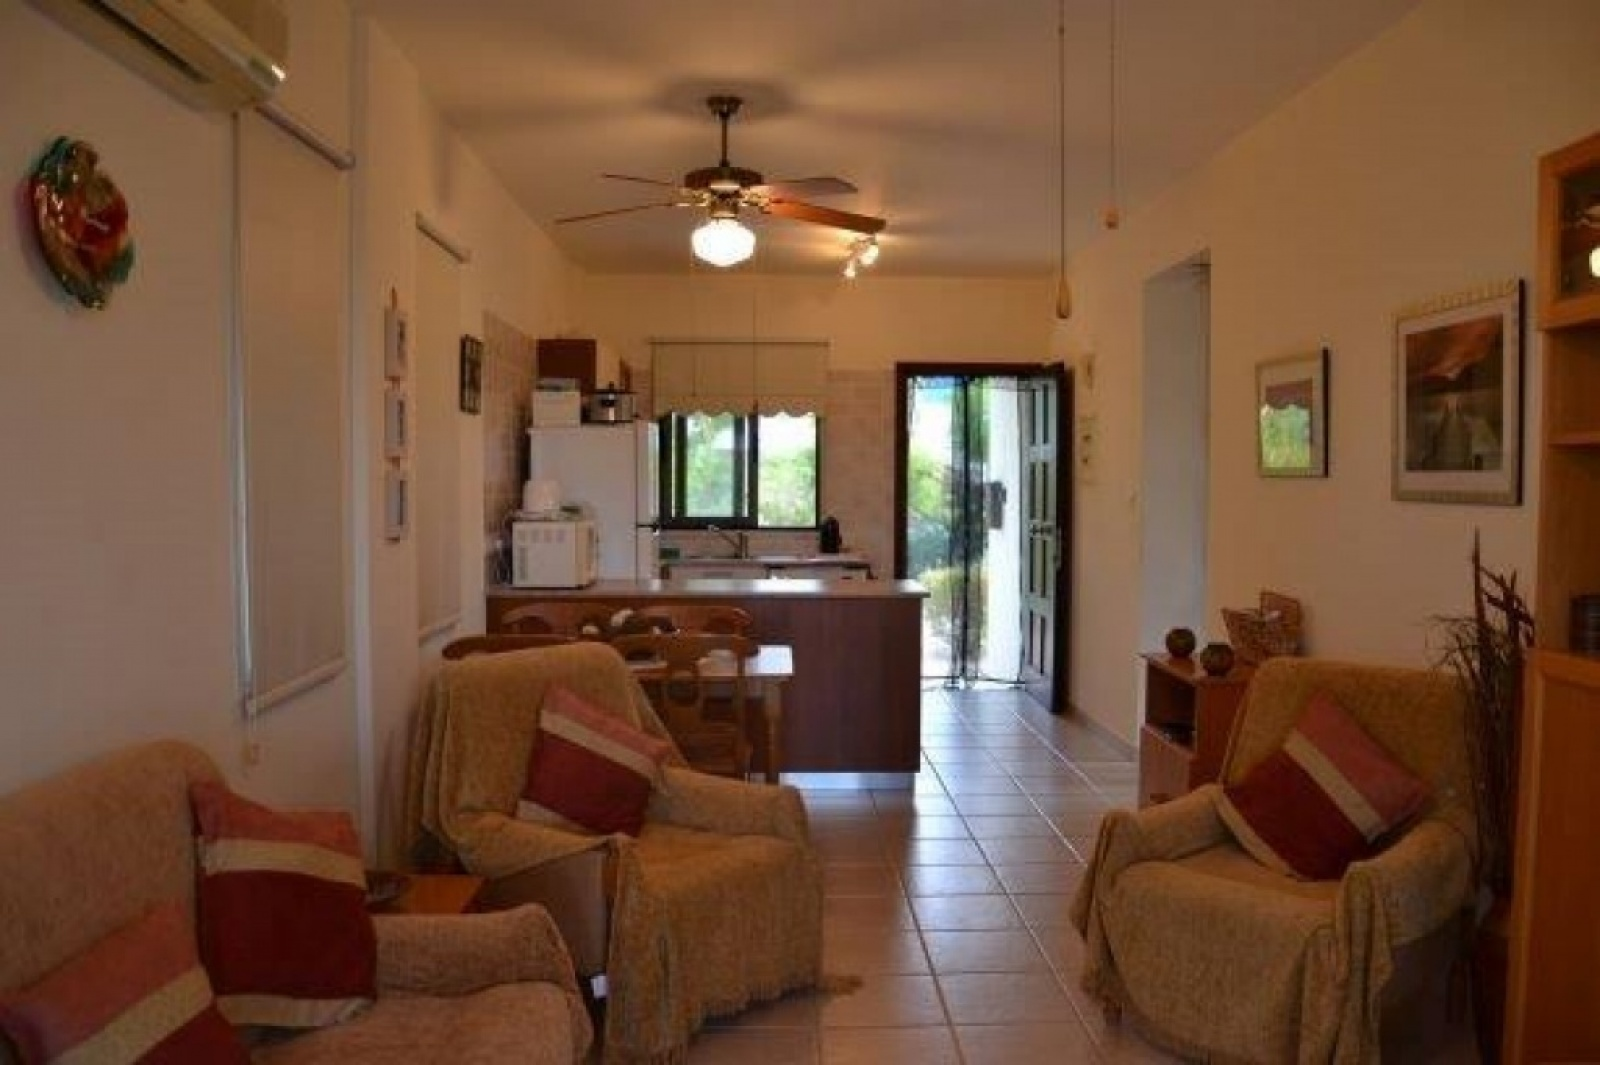 Residential Bungalow - Latsi Bungalow For Sale